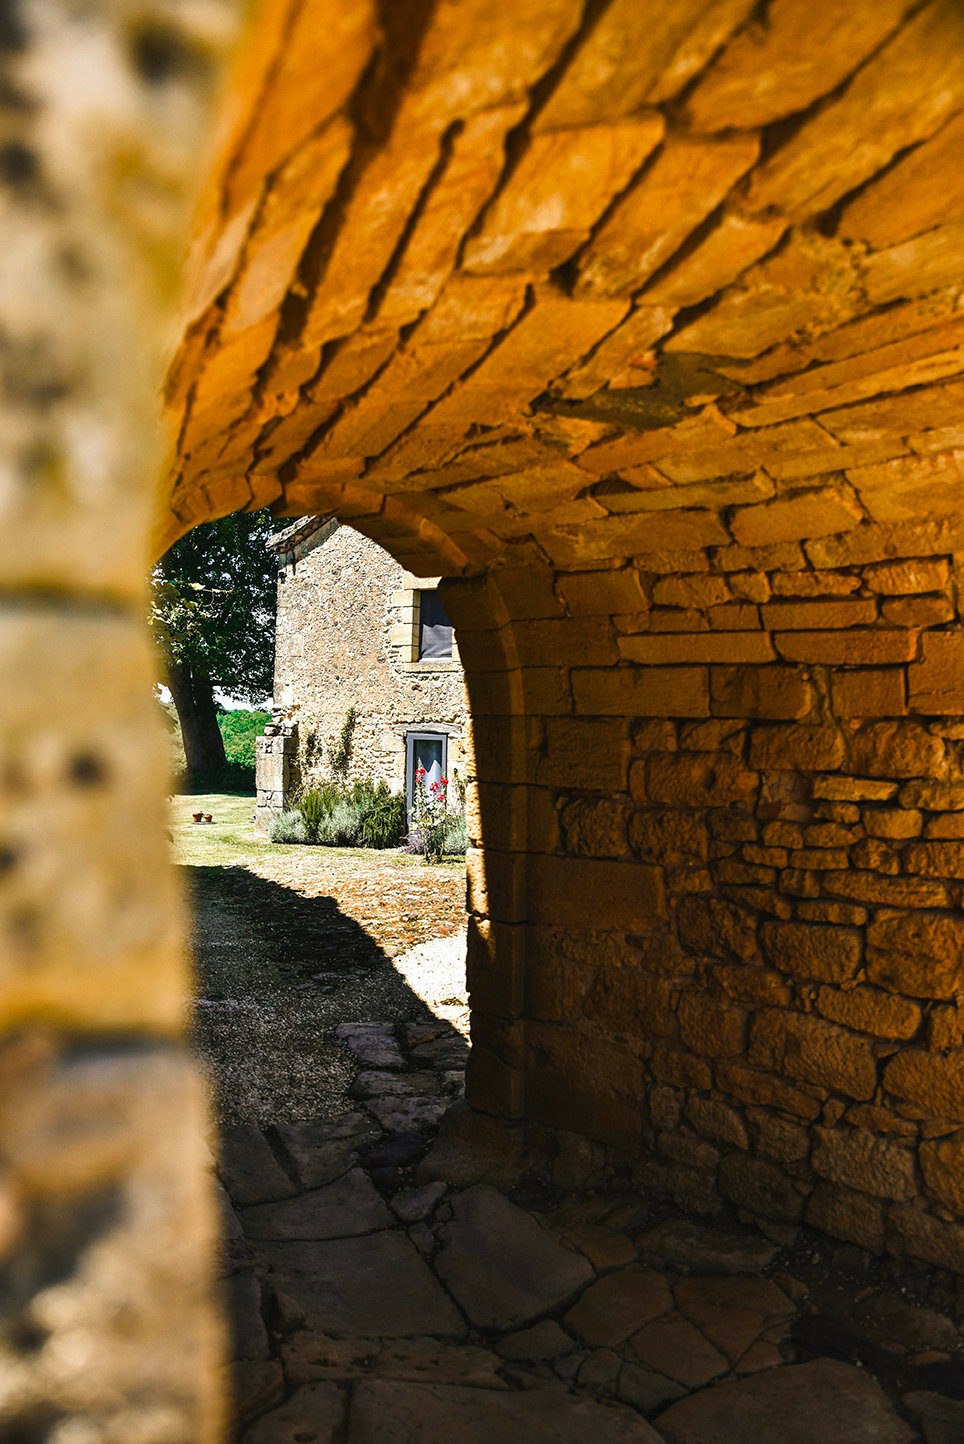 The centuries-old tunnel leading from Le Mas to Le Mazet in the Dordogne, France, with the holiday cottage in the sunlight in front of a large oak tree